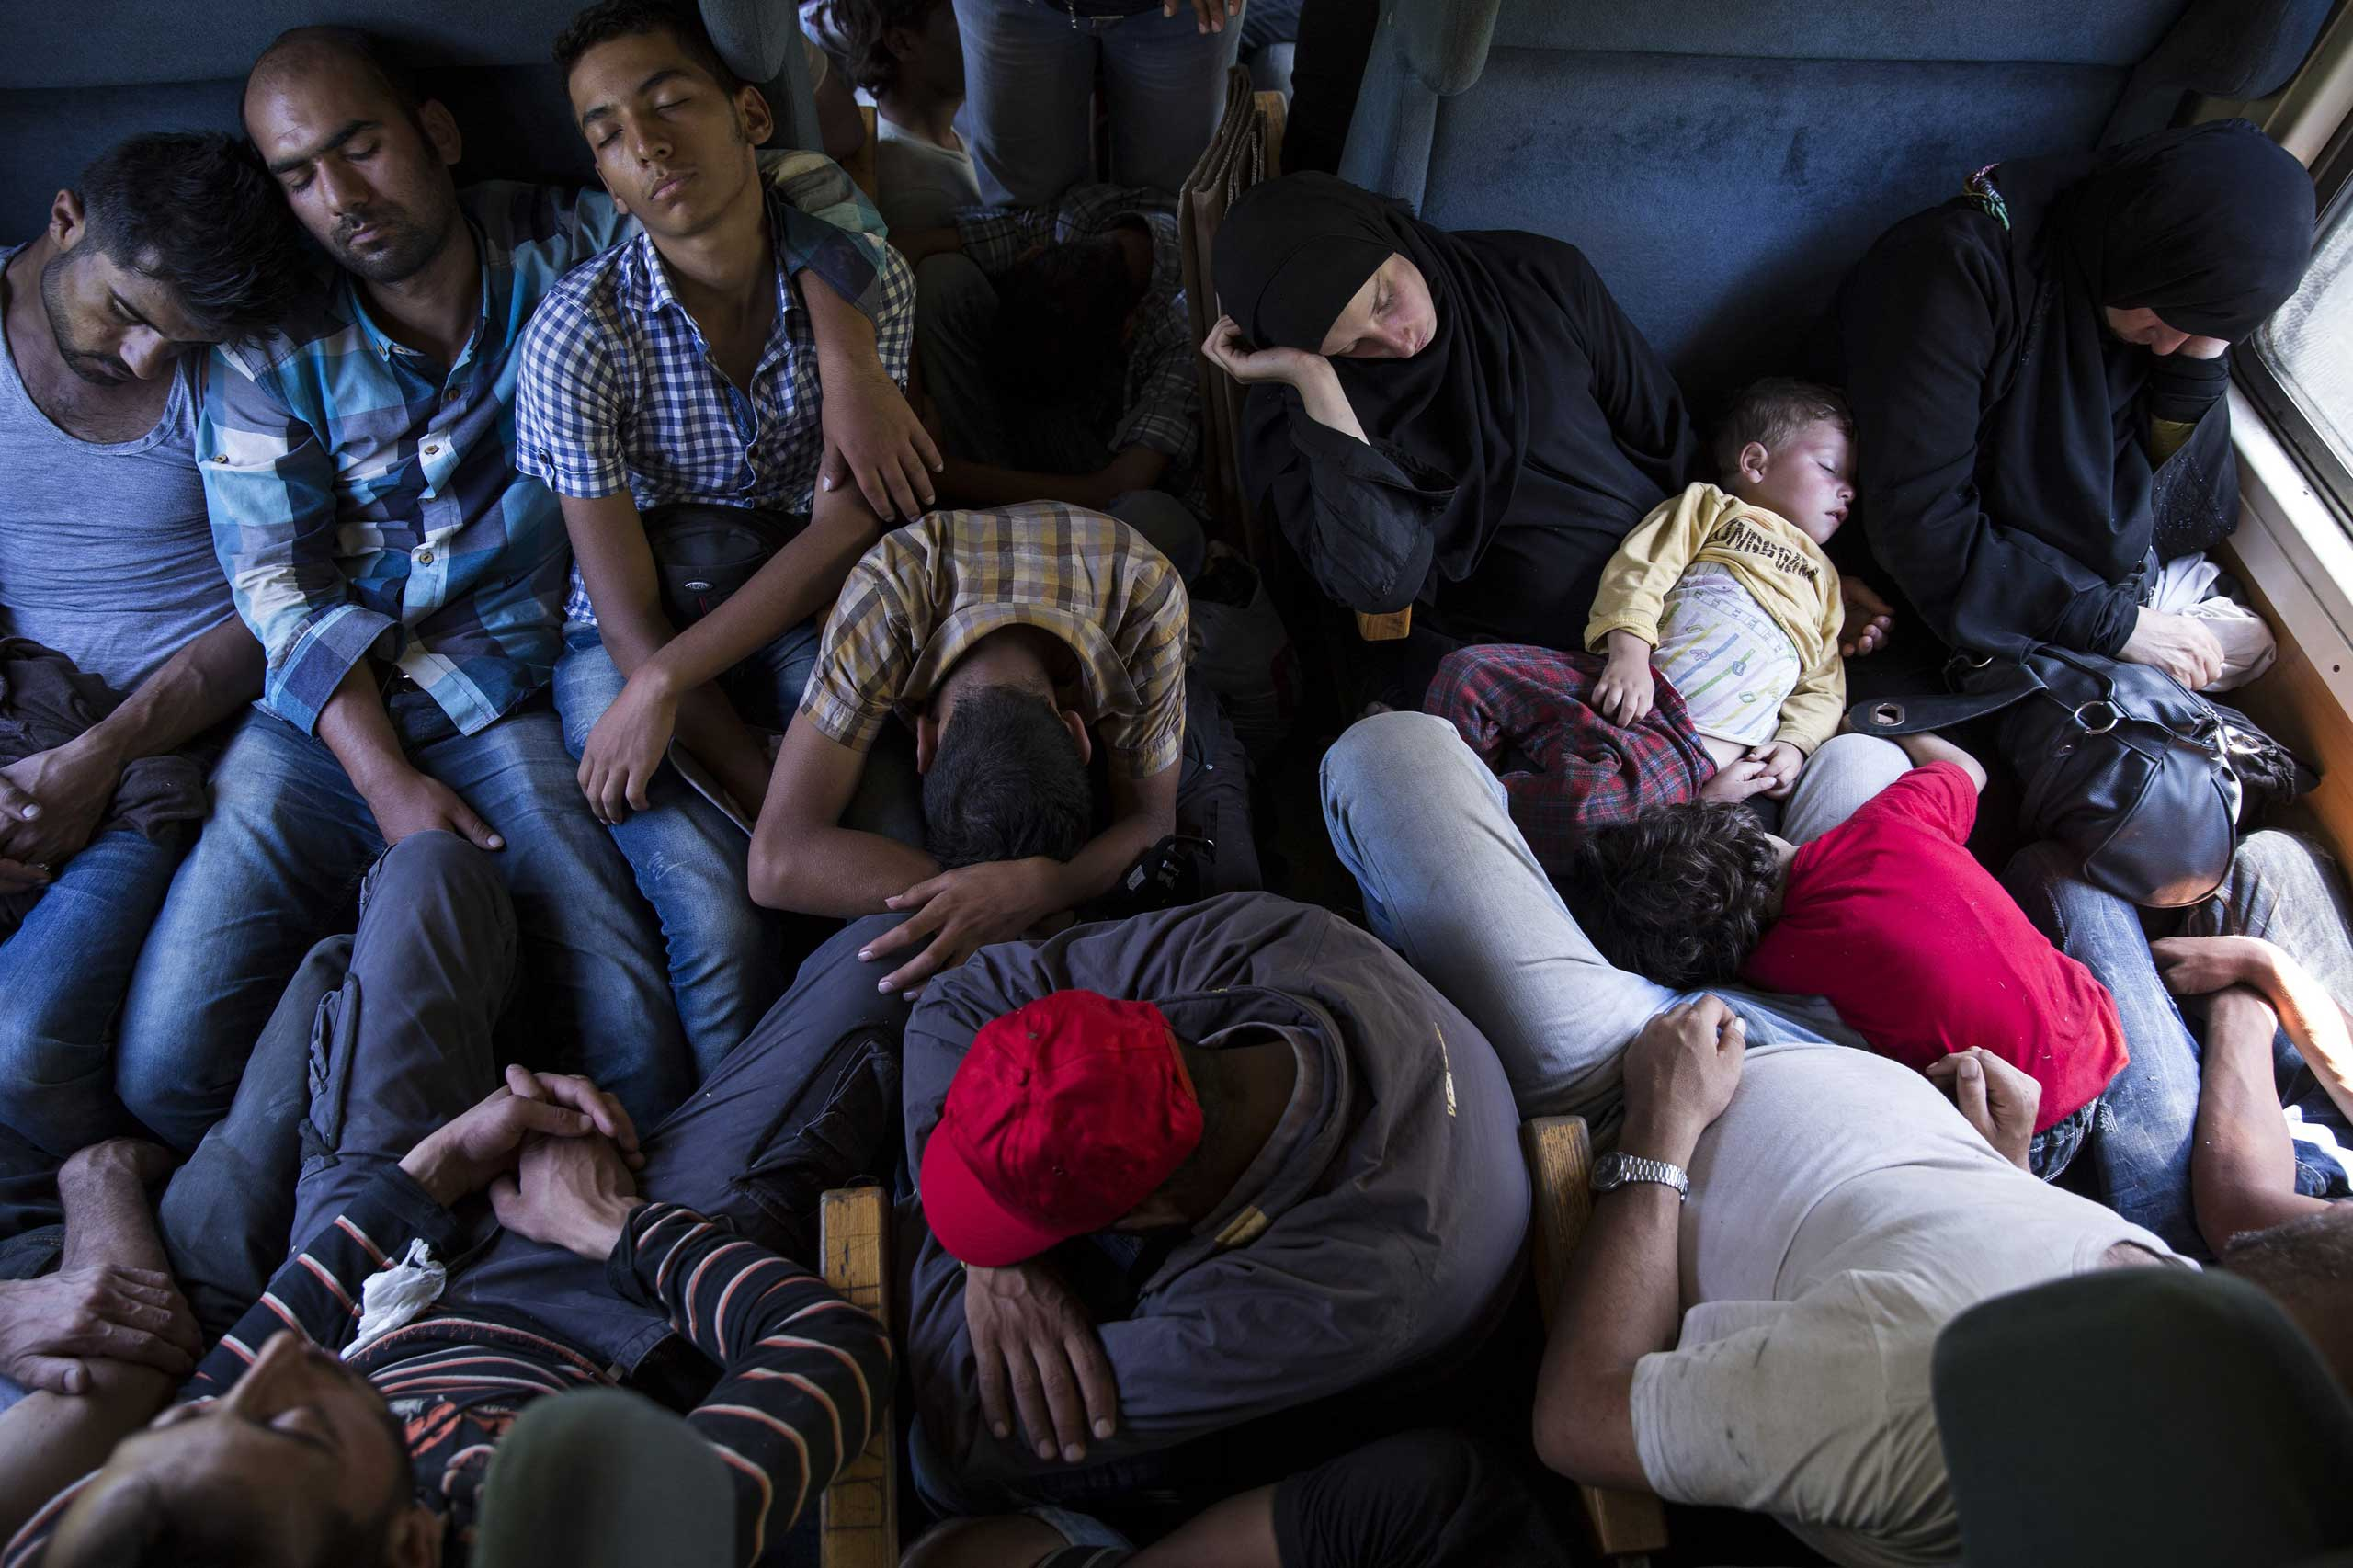 Migrant families ride a train from Gevgelija to the Serbian border in Macedonia, on Sept. 4, 2015.